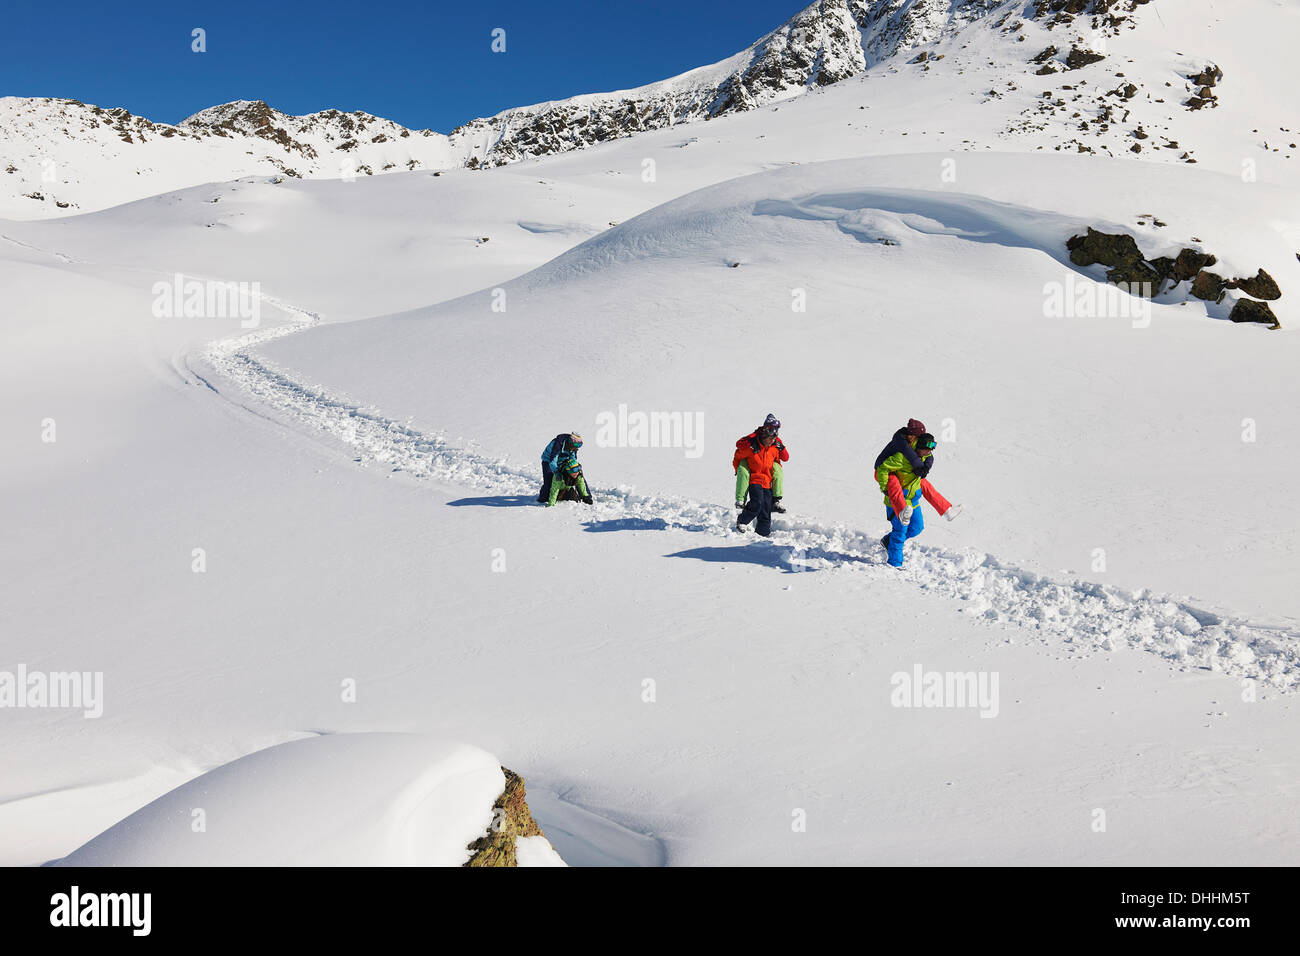 Friends giving each other piggy backs in snow, Kuhtai, Austria - Stock Image